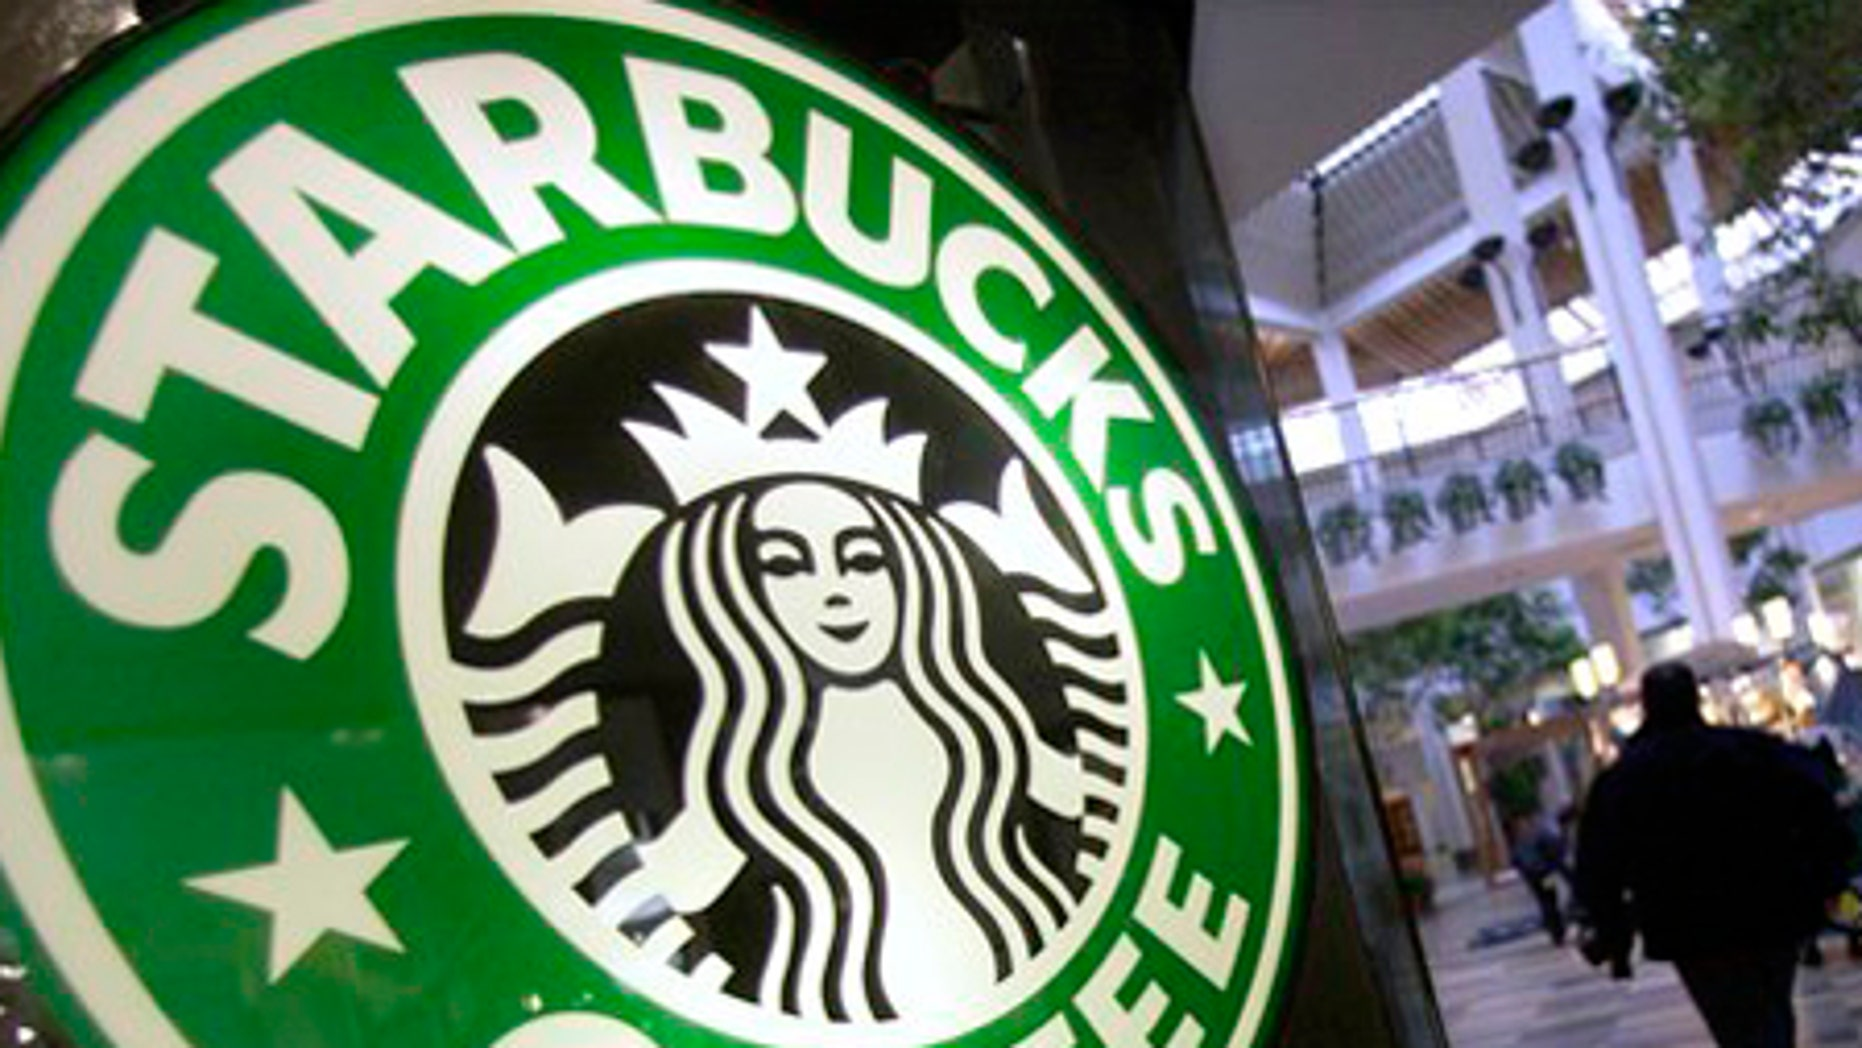 ** FILE ** In this Nov. 10, 2008 file photo, a man pulls a cart past a Starbucks store inside the Beachwood Mall in Beachwood, Ohio.  The allure of the value meal has long seduced penny-pinchers craving a cheeseburger. Now, as the dismal economy slurps up profits, Starbucks Corp. is hoping to find some sales salvation in its own value meal variety. (AP Photo/Amy Sancetta, file)